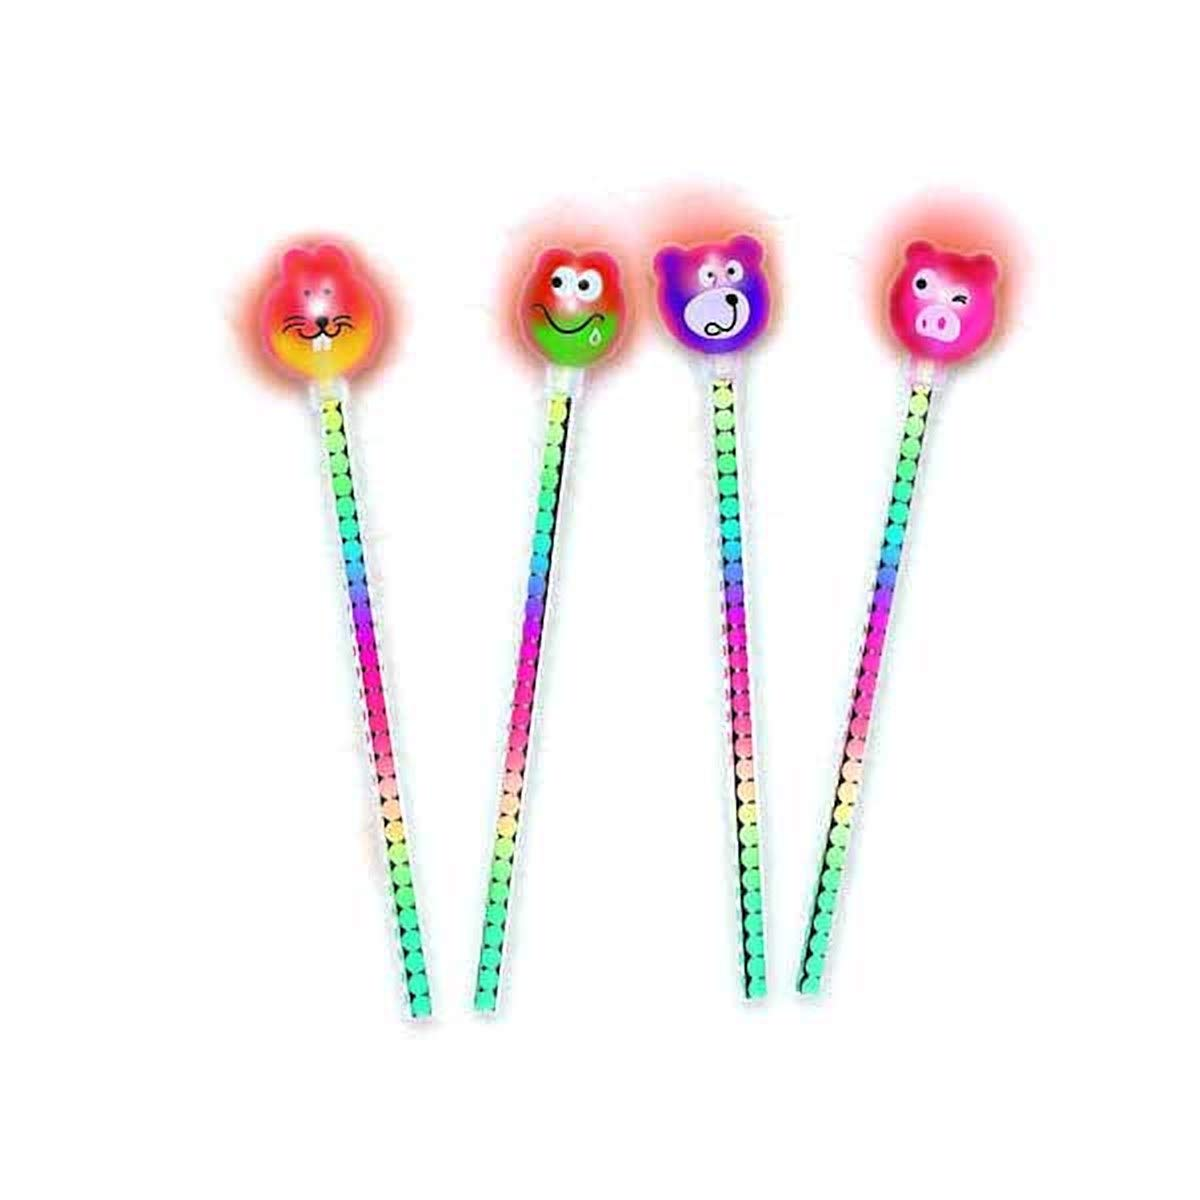 Party Favor Amscan Toys 391256 Pencil with Light Up Critter Eraser